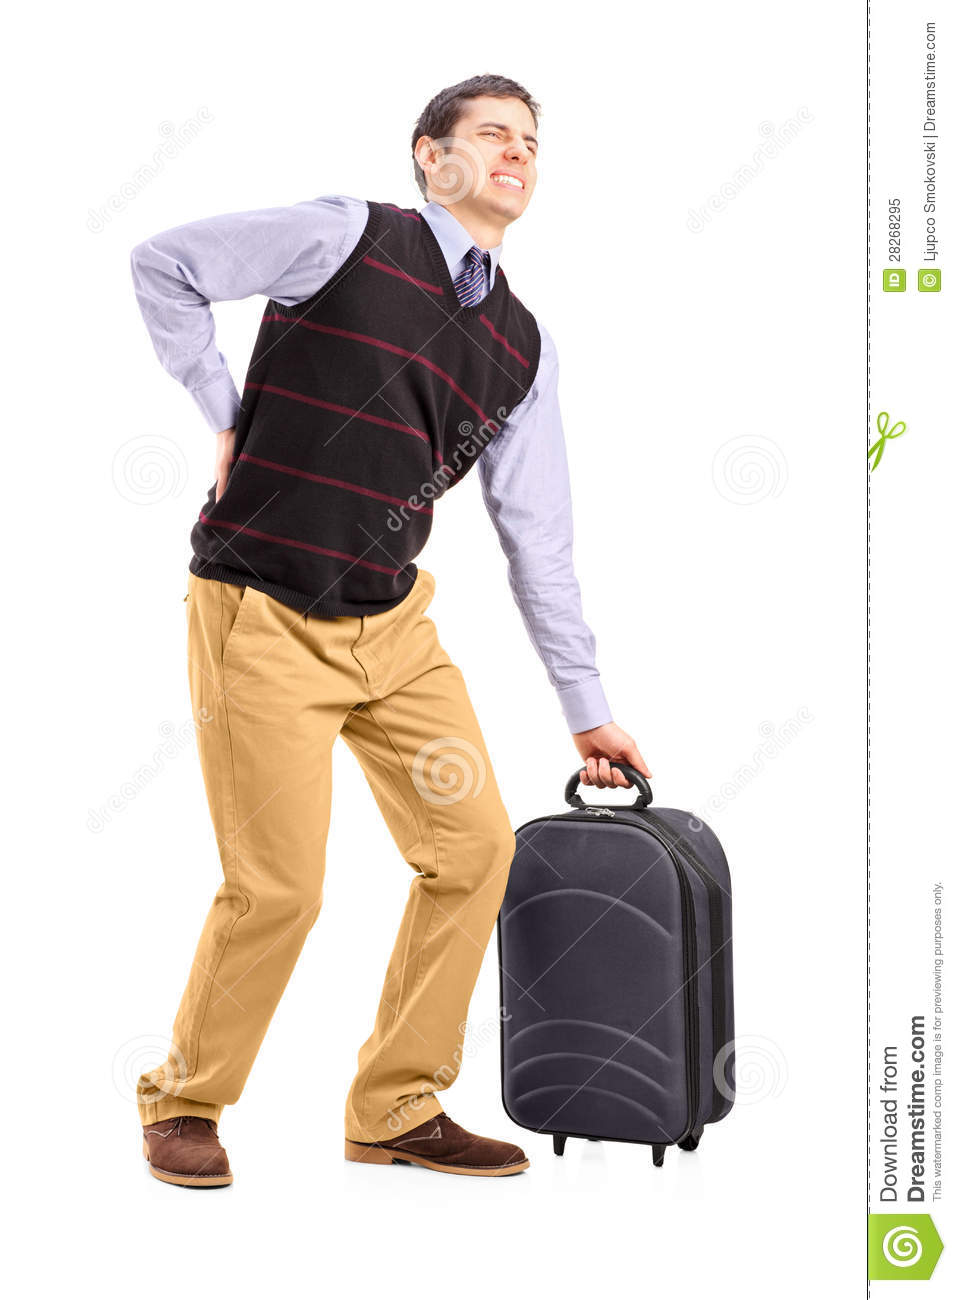 Man Lifting His Luggage And Suffering From A Back Pain Royalty Free ...